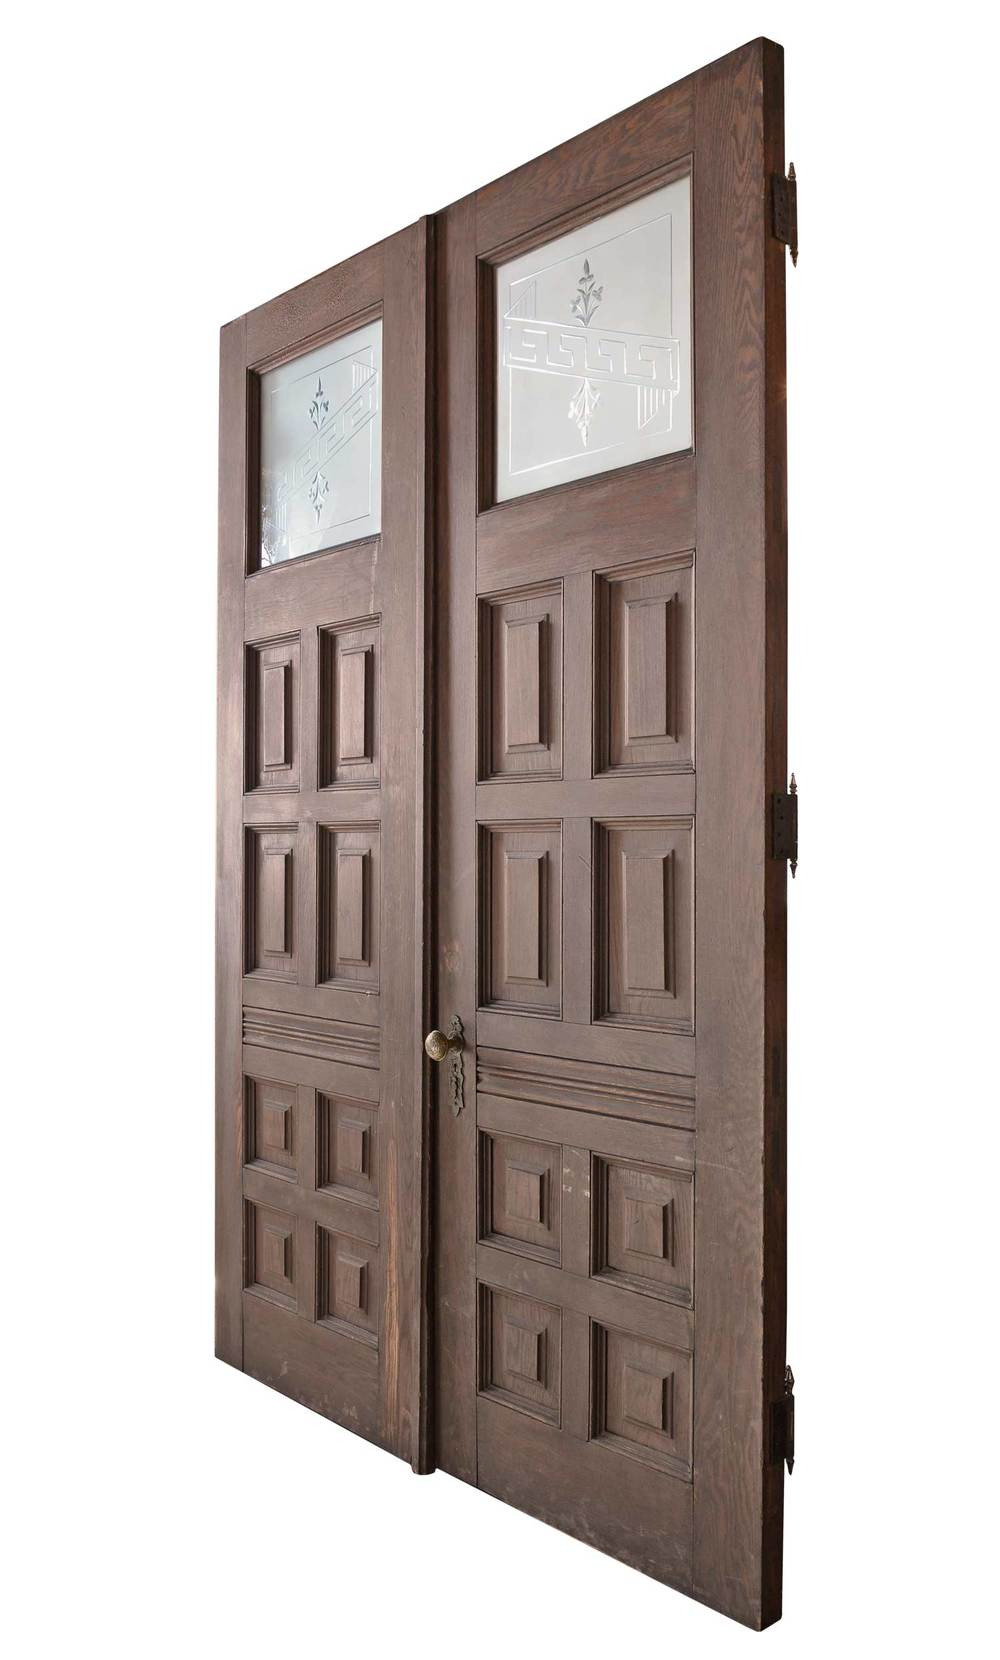 46019-double-doors-with-etched-glass-angle.jpg